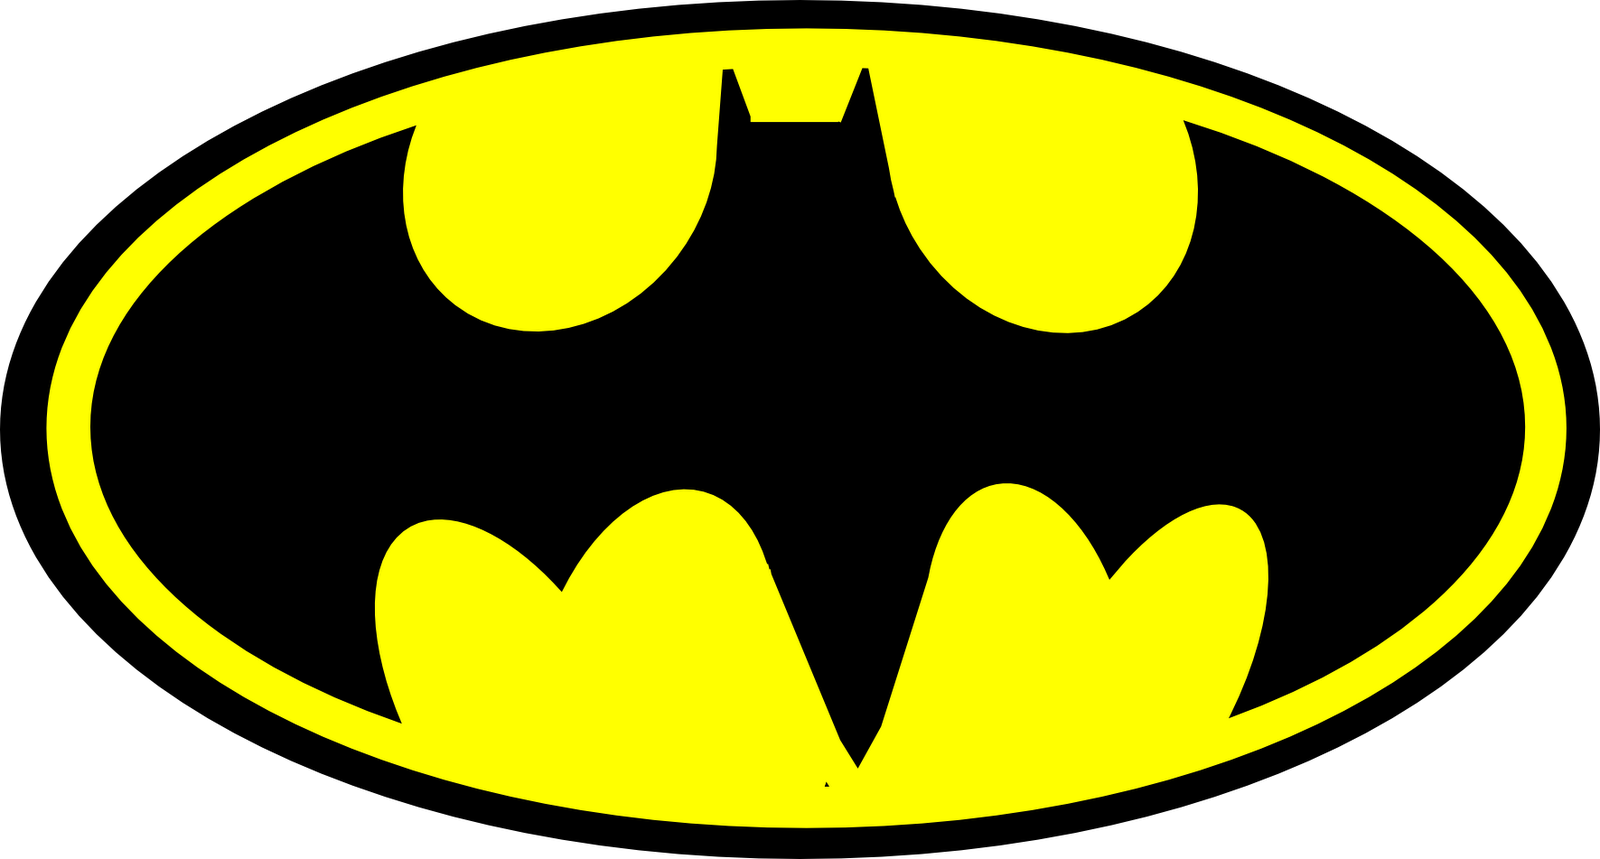 logo batman vector 2050